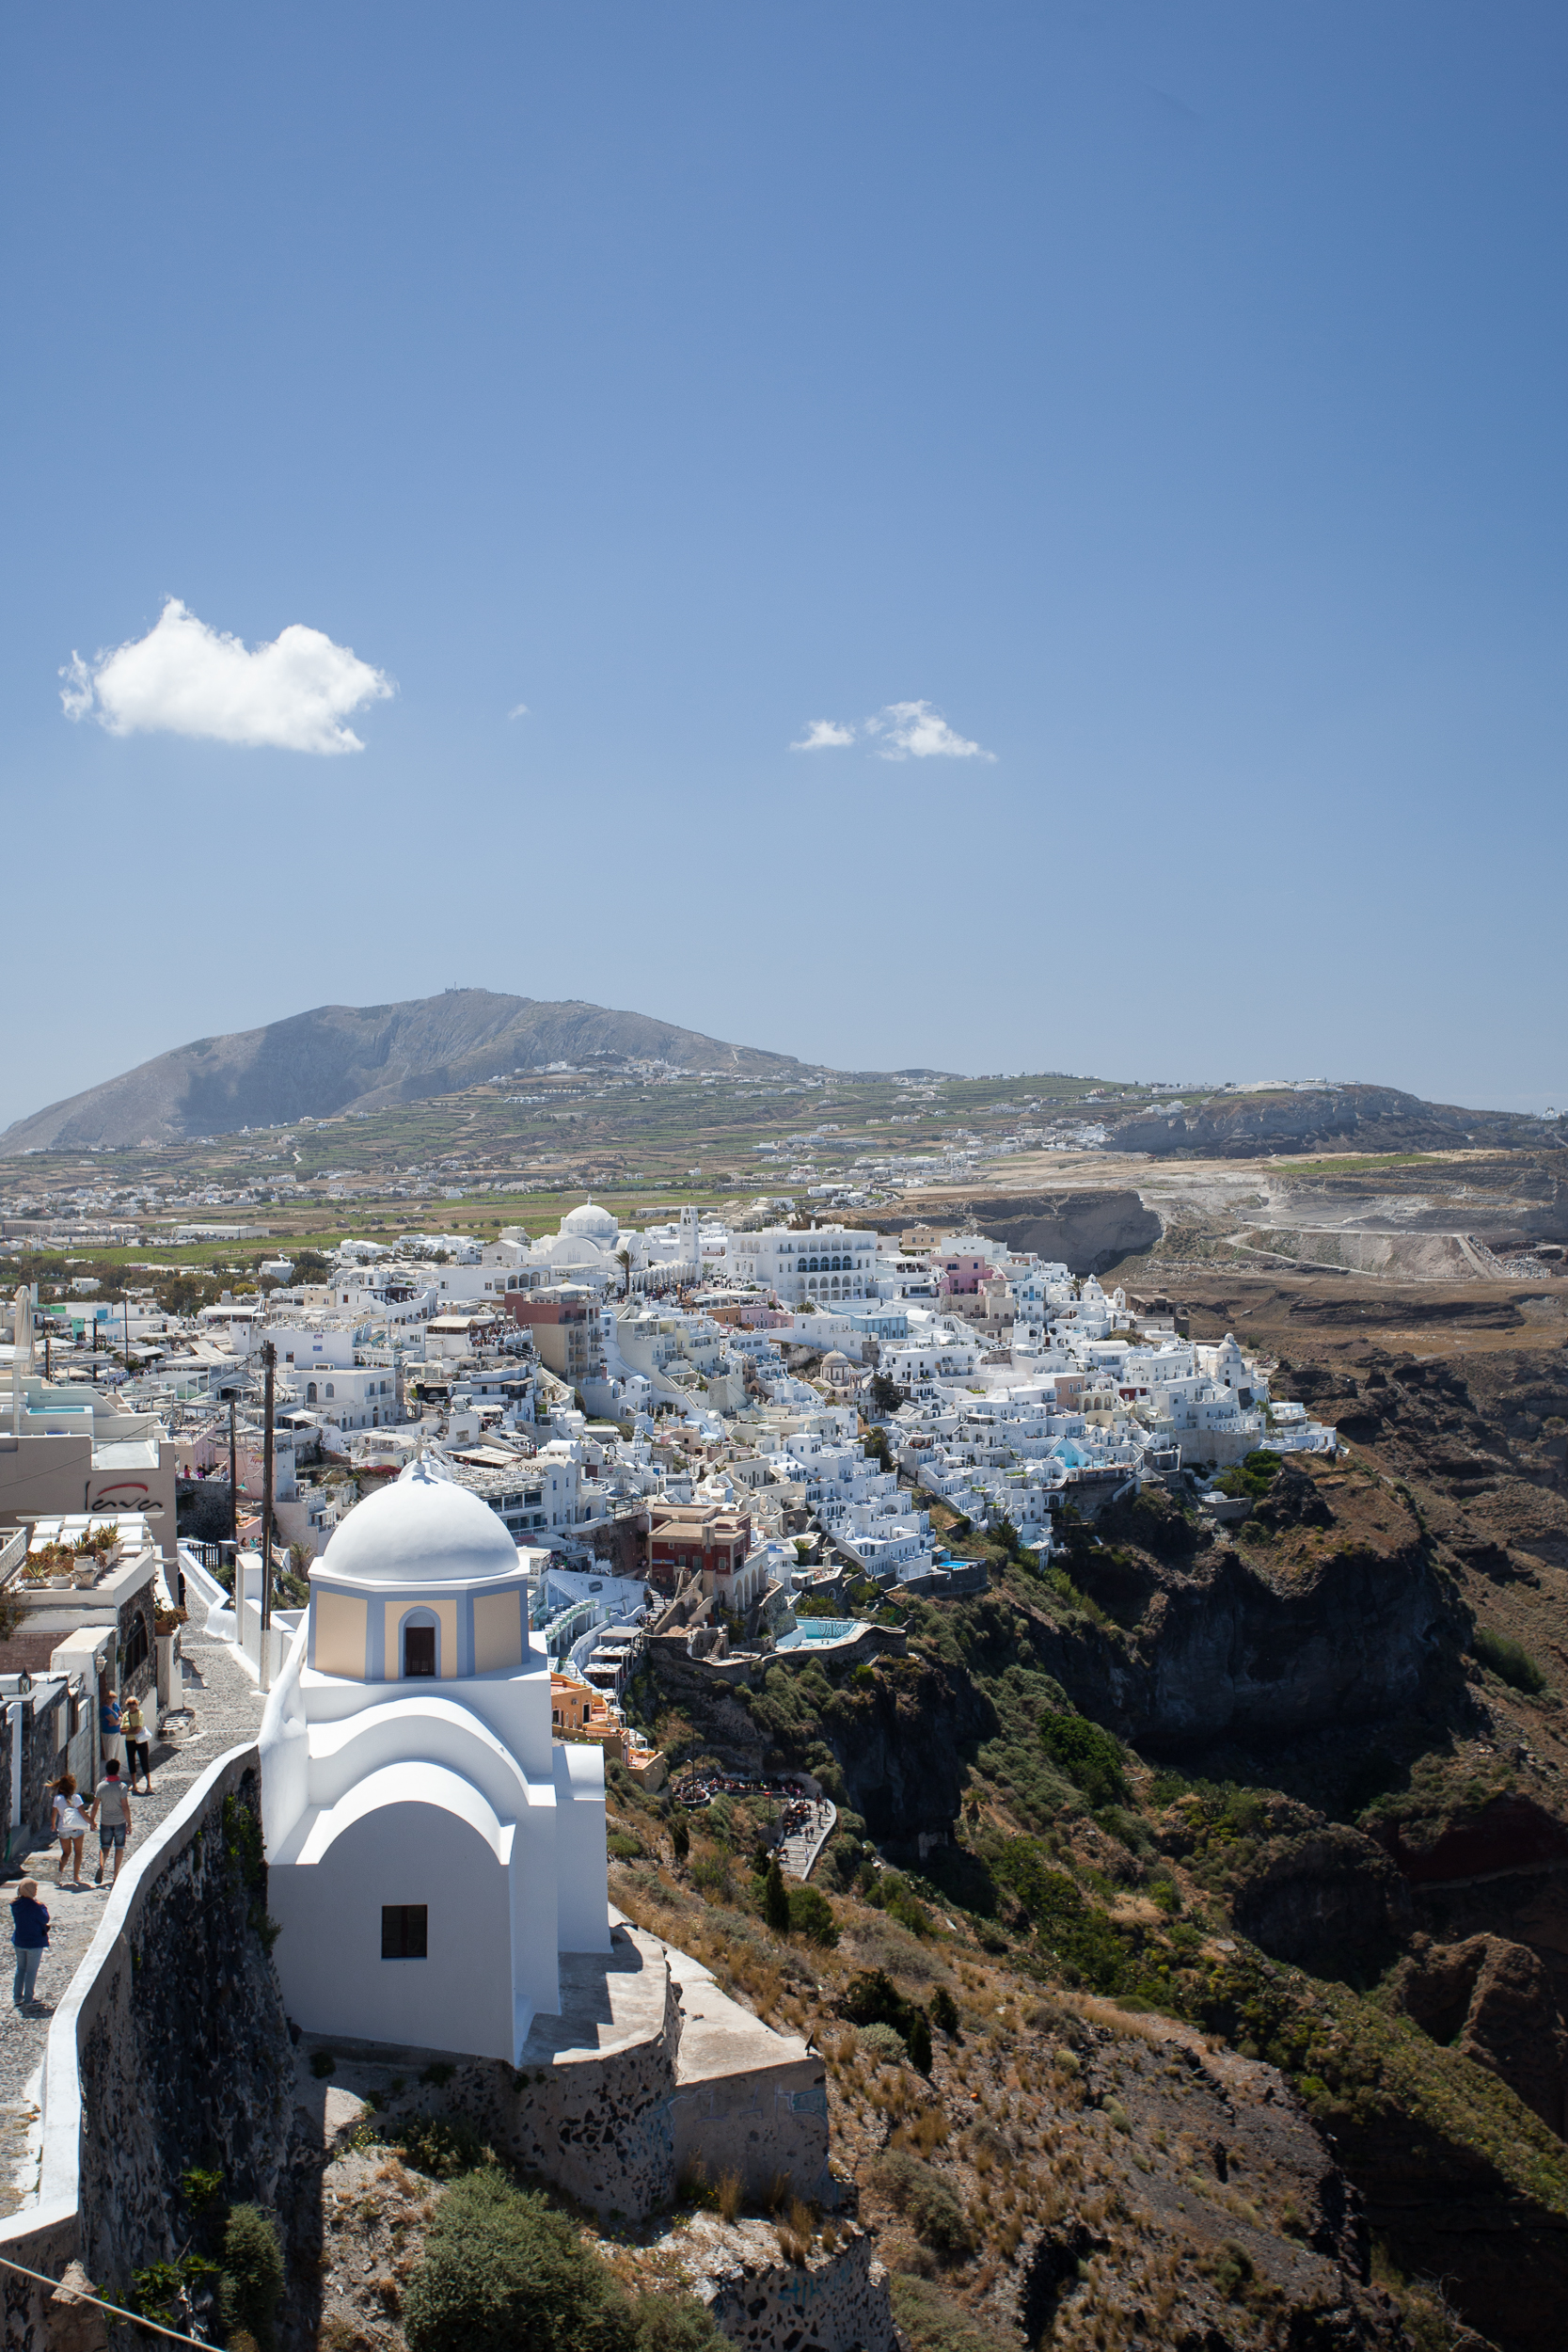 Chacon Images_Greece_Travel_WEB_-5265.jpg